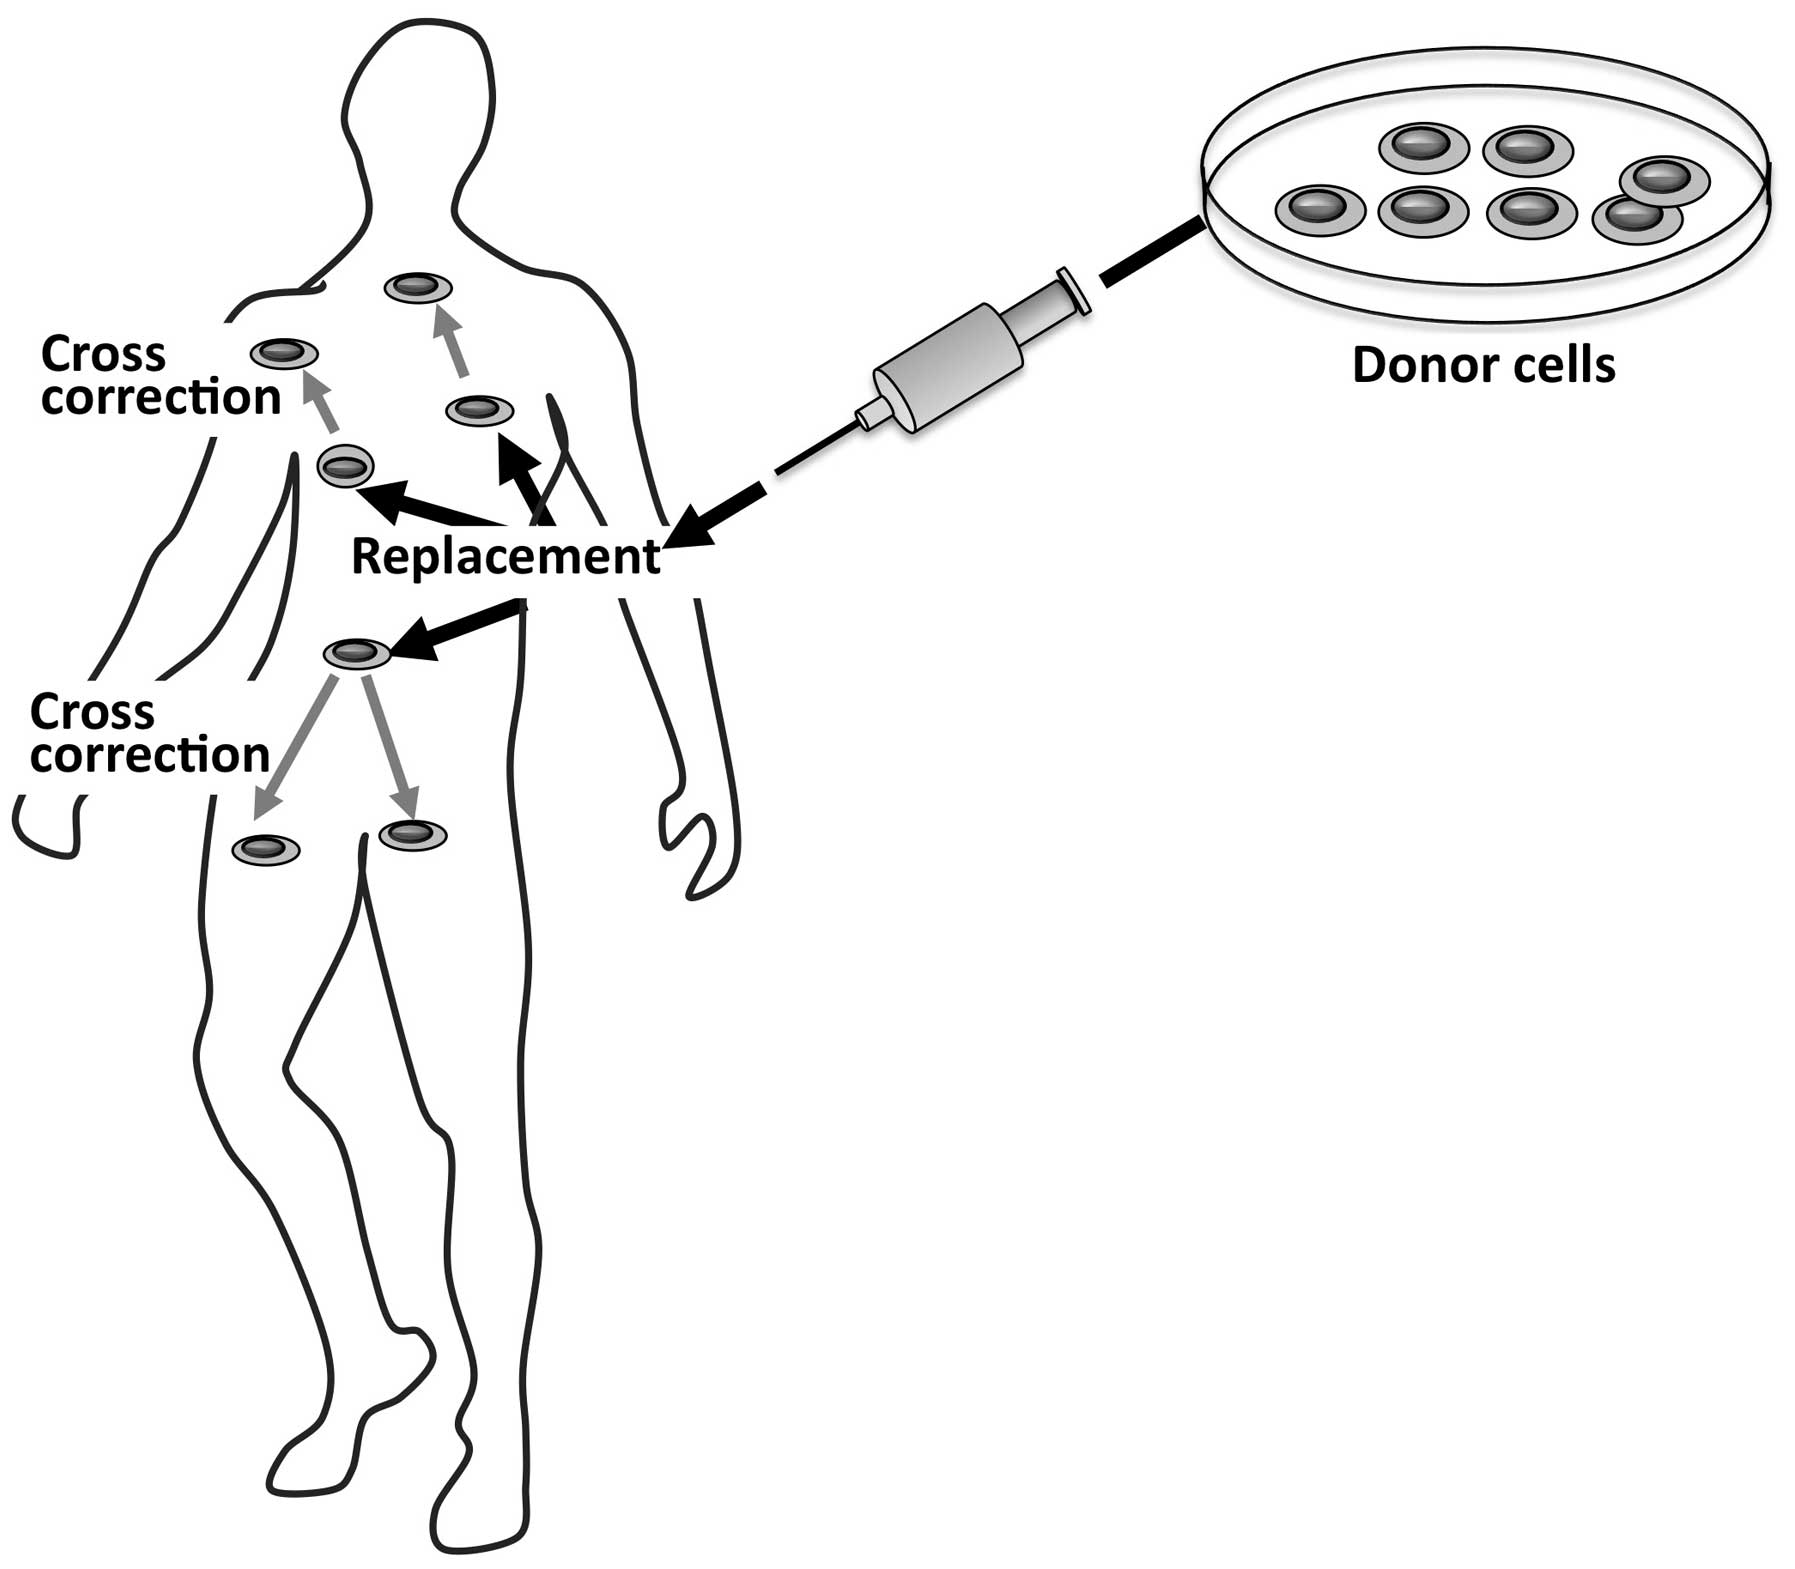 figure stem cell is based on the use of stem cells derived from a healthy donor as a therapeutic agent